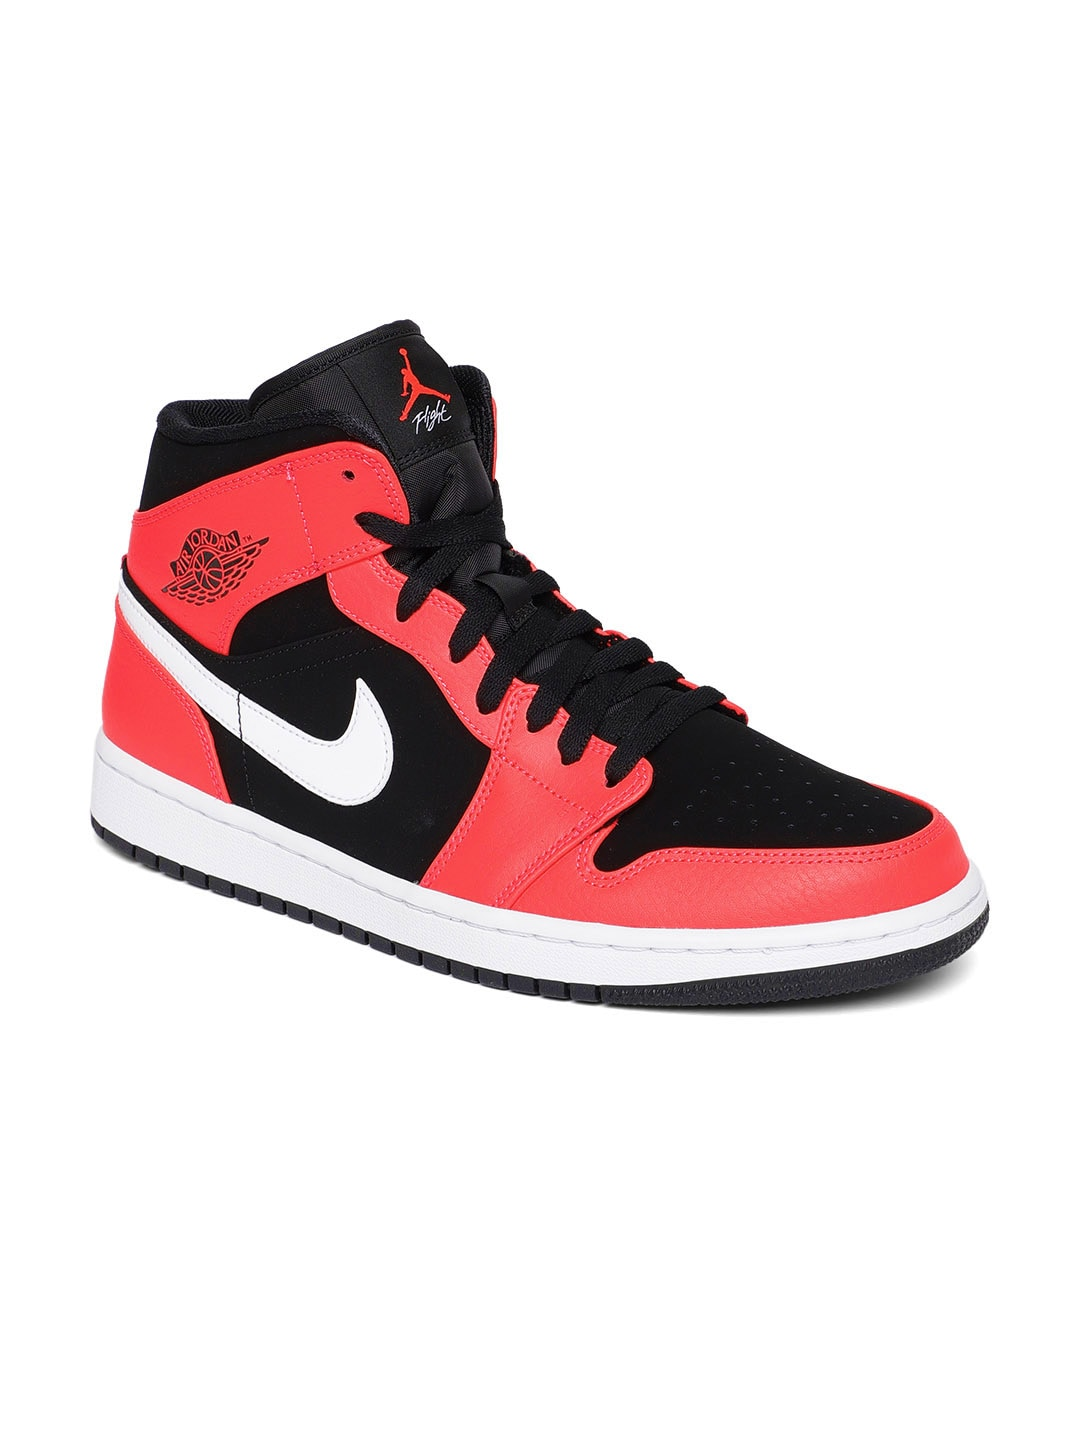 bbc0608d9d3c Nike Jordan Shoes - Buy Nike Jordan Shoes online in India